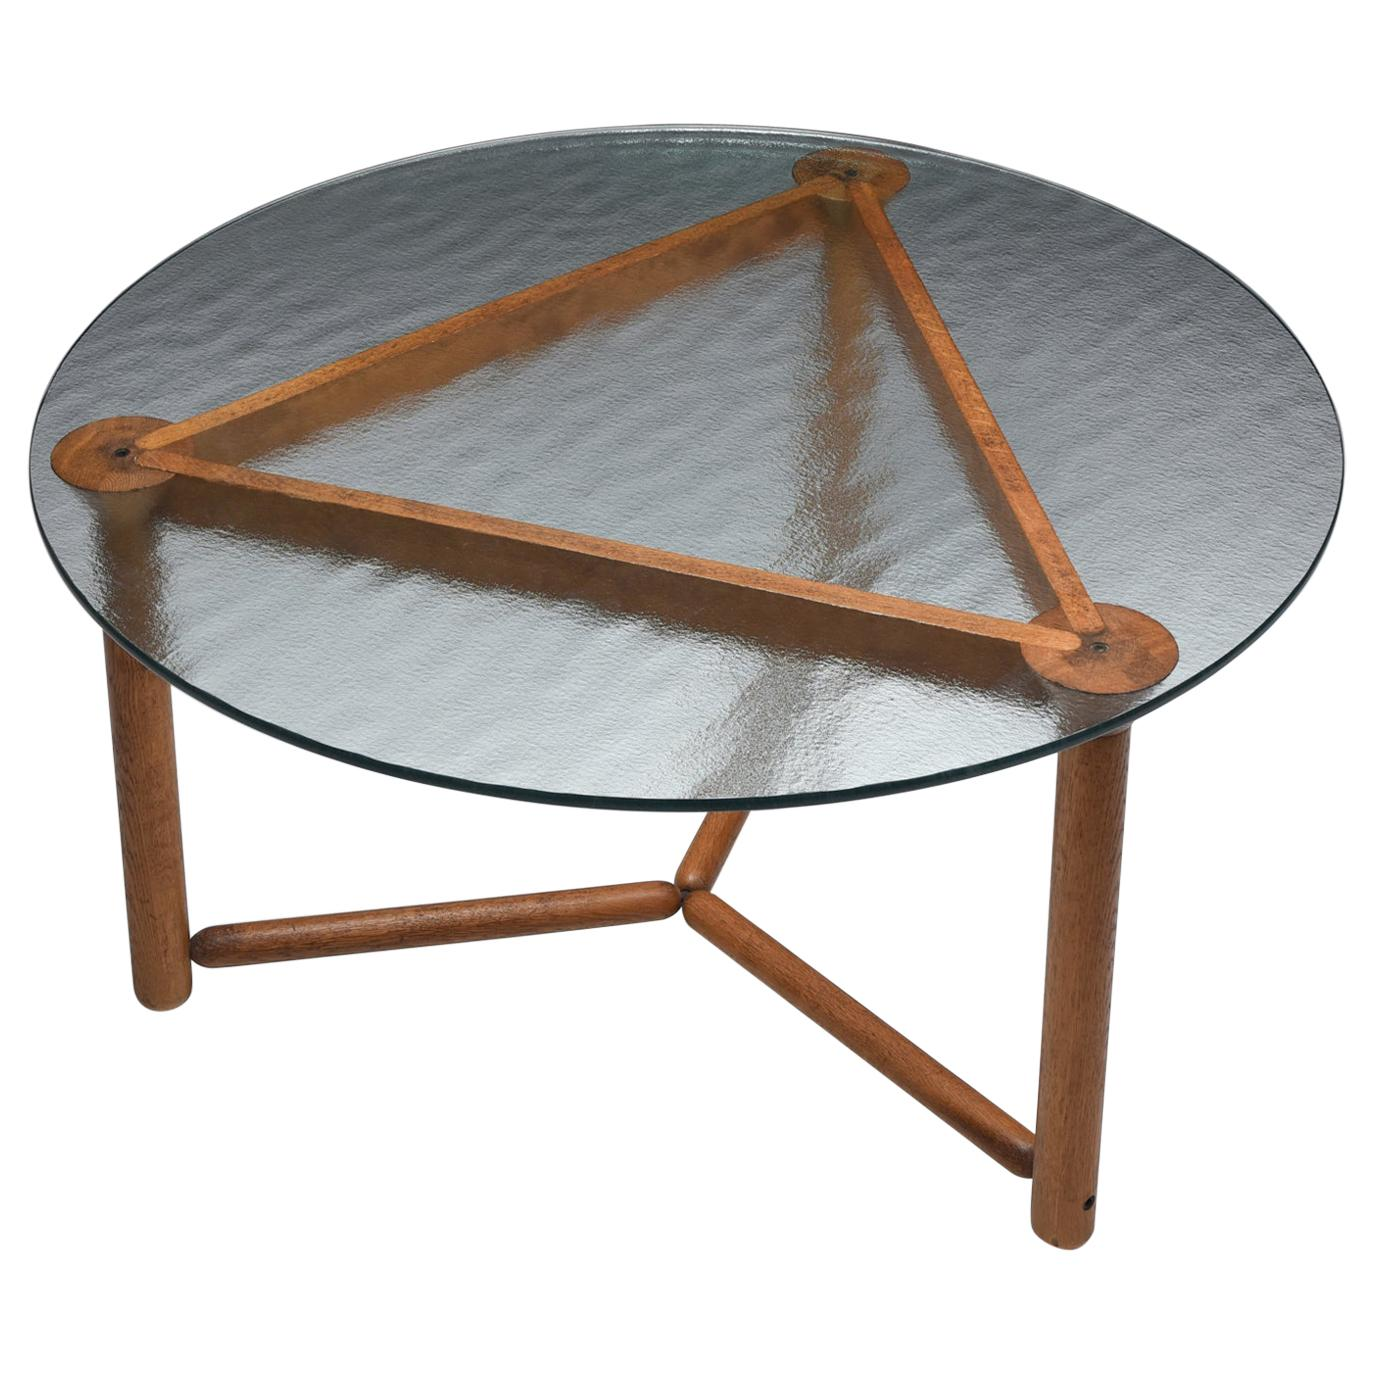 Vico Magistretti PAN Dining Table for Rosenthal